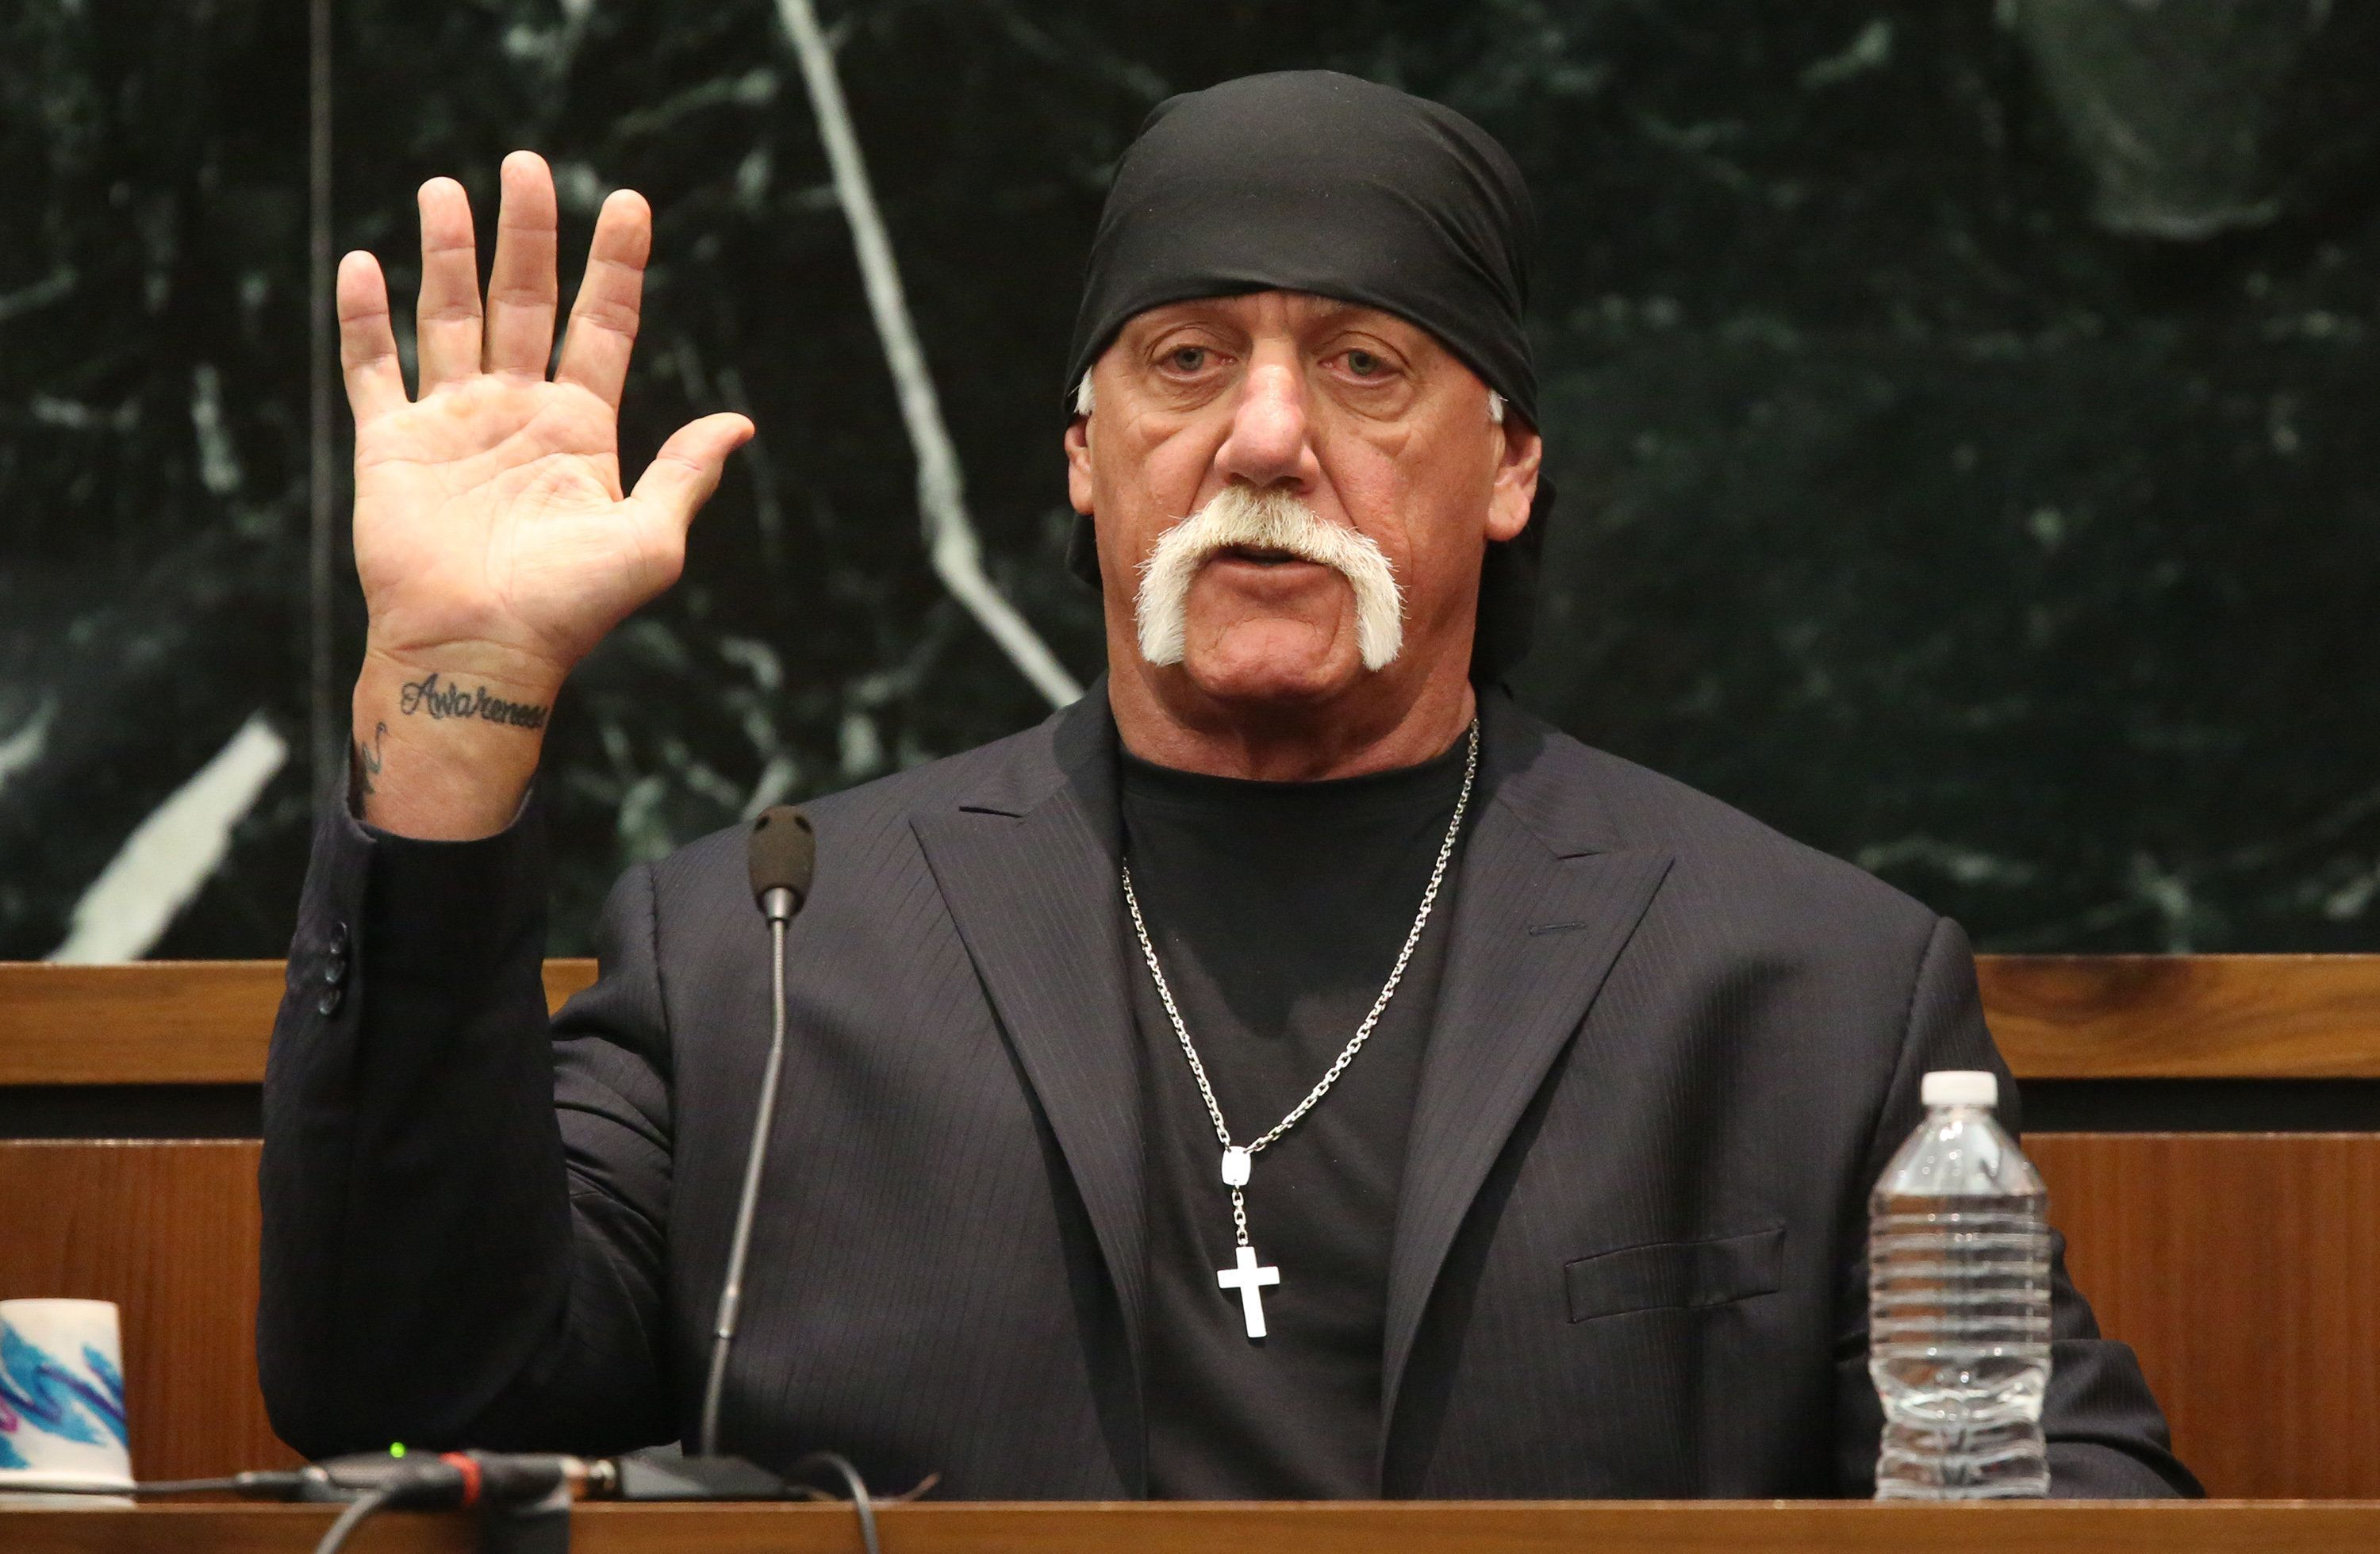 "Terry Bollea, aka Hulk Hogan, takes the oath in court during his trial against Gawker Media, in St Petersburg, Florida March 8, 2016. Hogan testified on Tuesday he no longer was ""the same person I was before"" following personal setbacks and the humiliation suffered when the online news outlet Gawker posted a video of him having sex with a friend's wife.   REUTERS/Tampa Bay Times/John Pendygraft/Pool  MANDATORY NYPOST OUT"